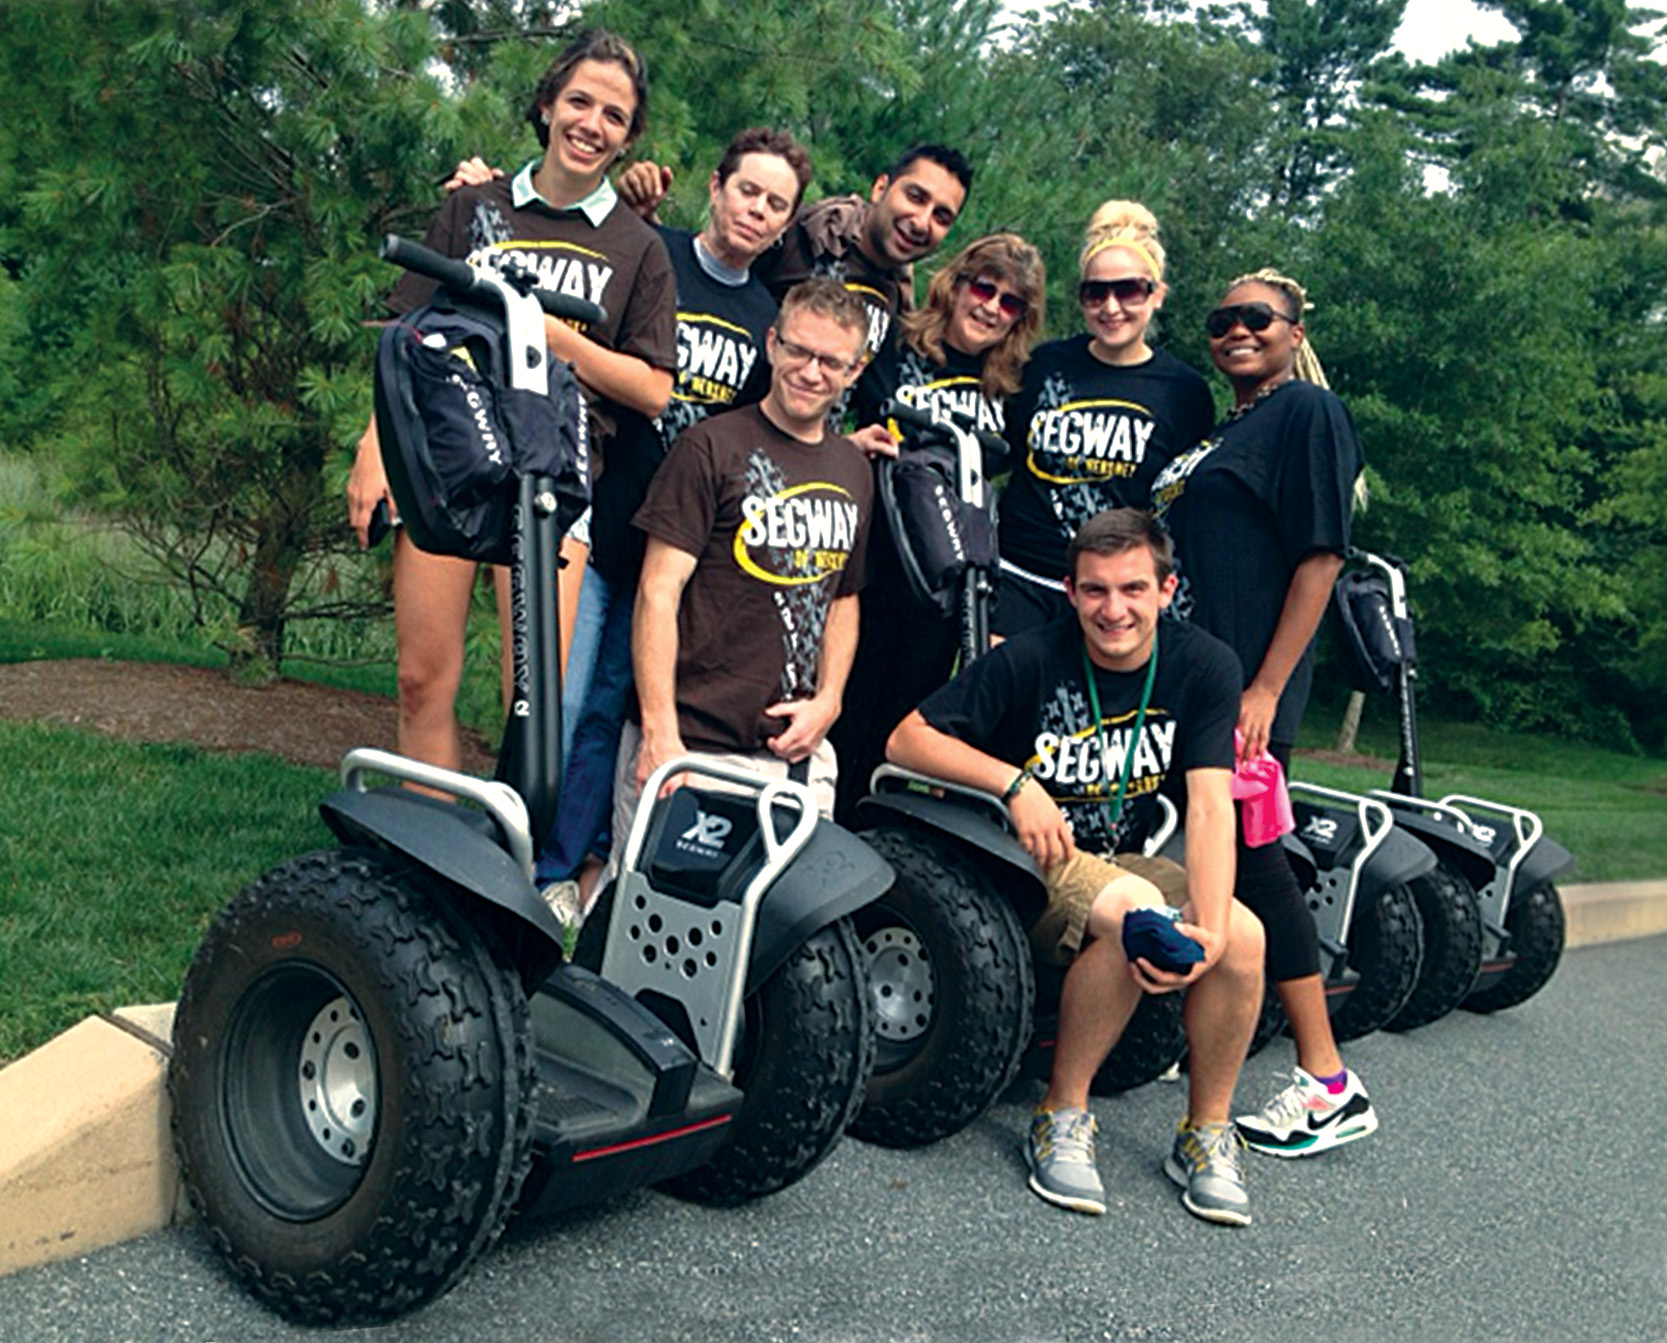 Segway Tours and Obstacle Course